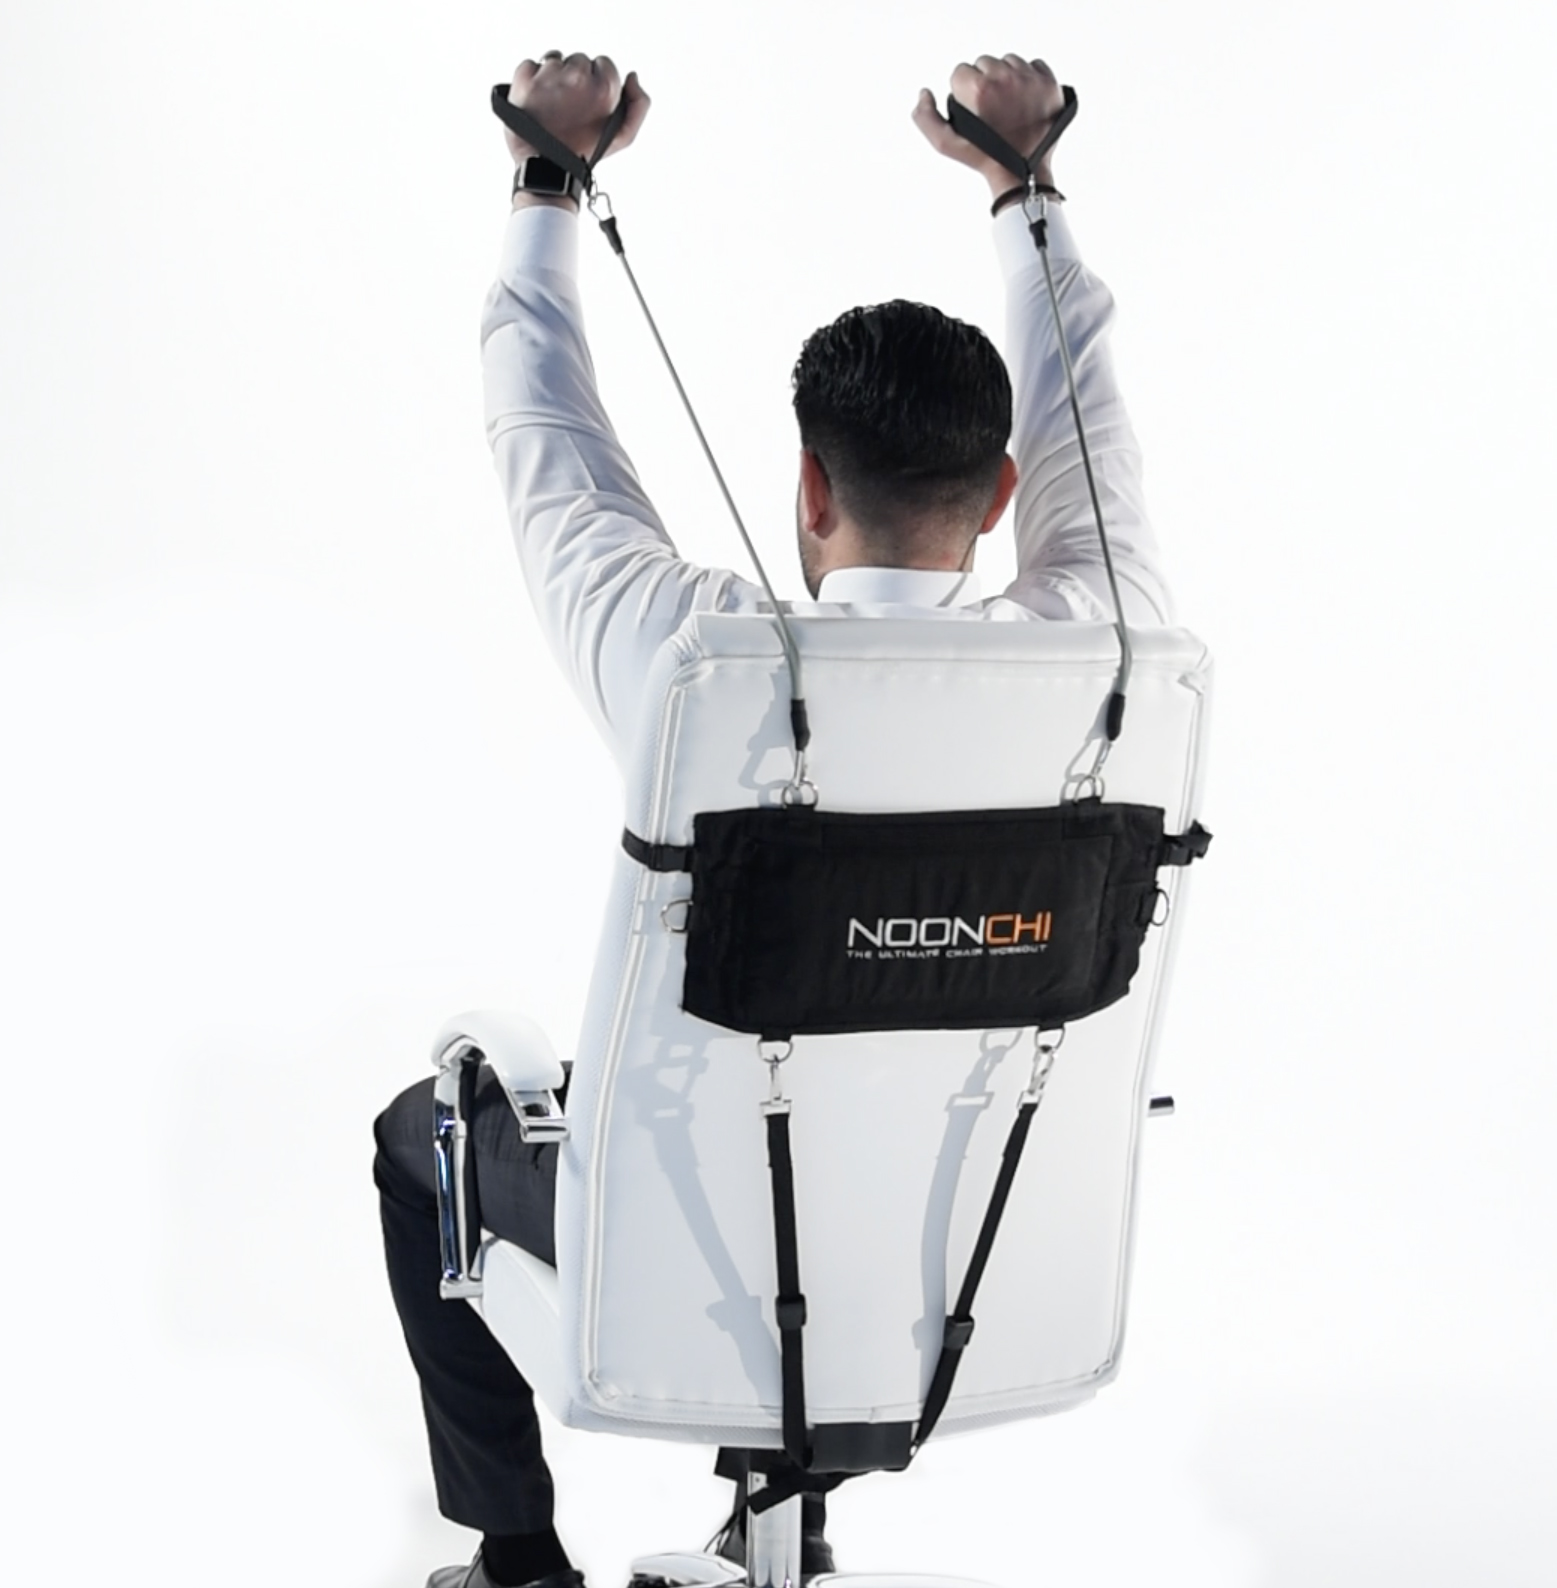 Noonchi Starts the New Year With a Portable Office Chair